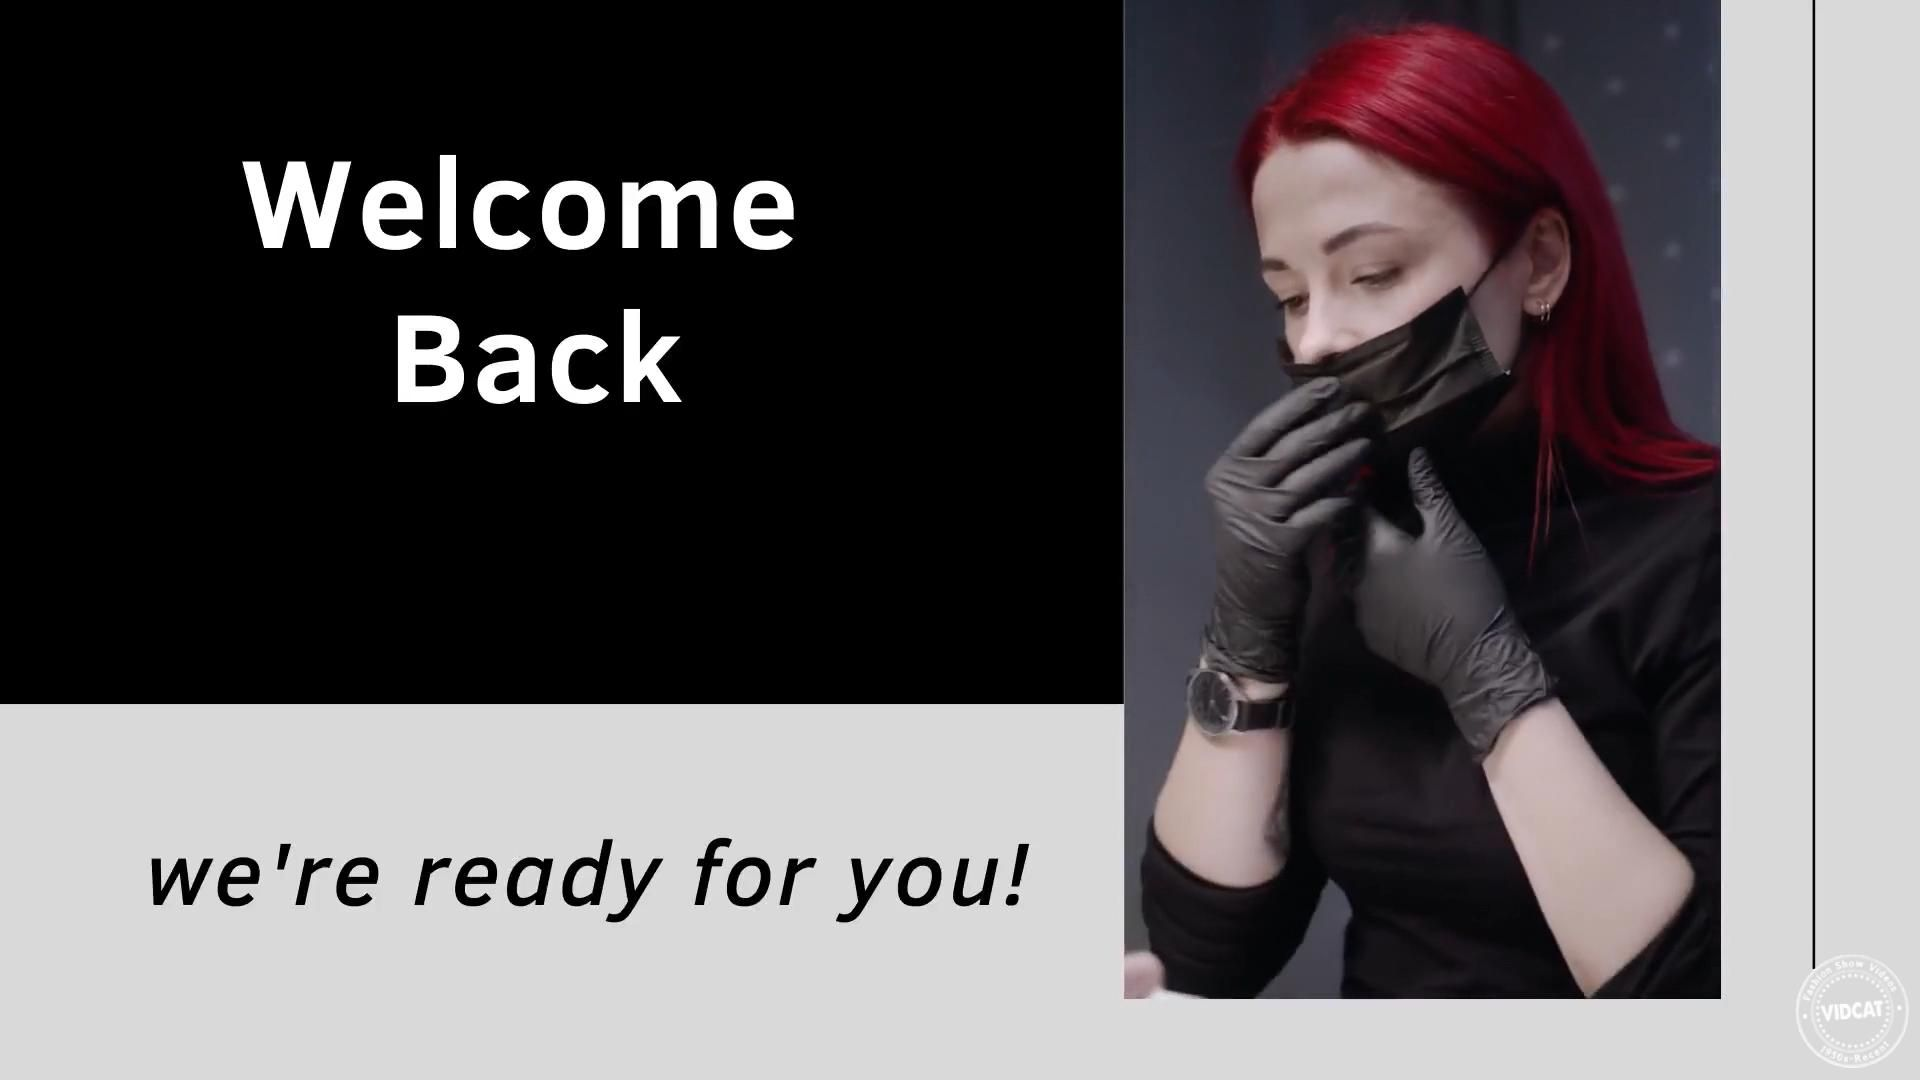 Welcome Back Video For Salons and Spas -   22 beauty Videos salon ideas